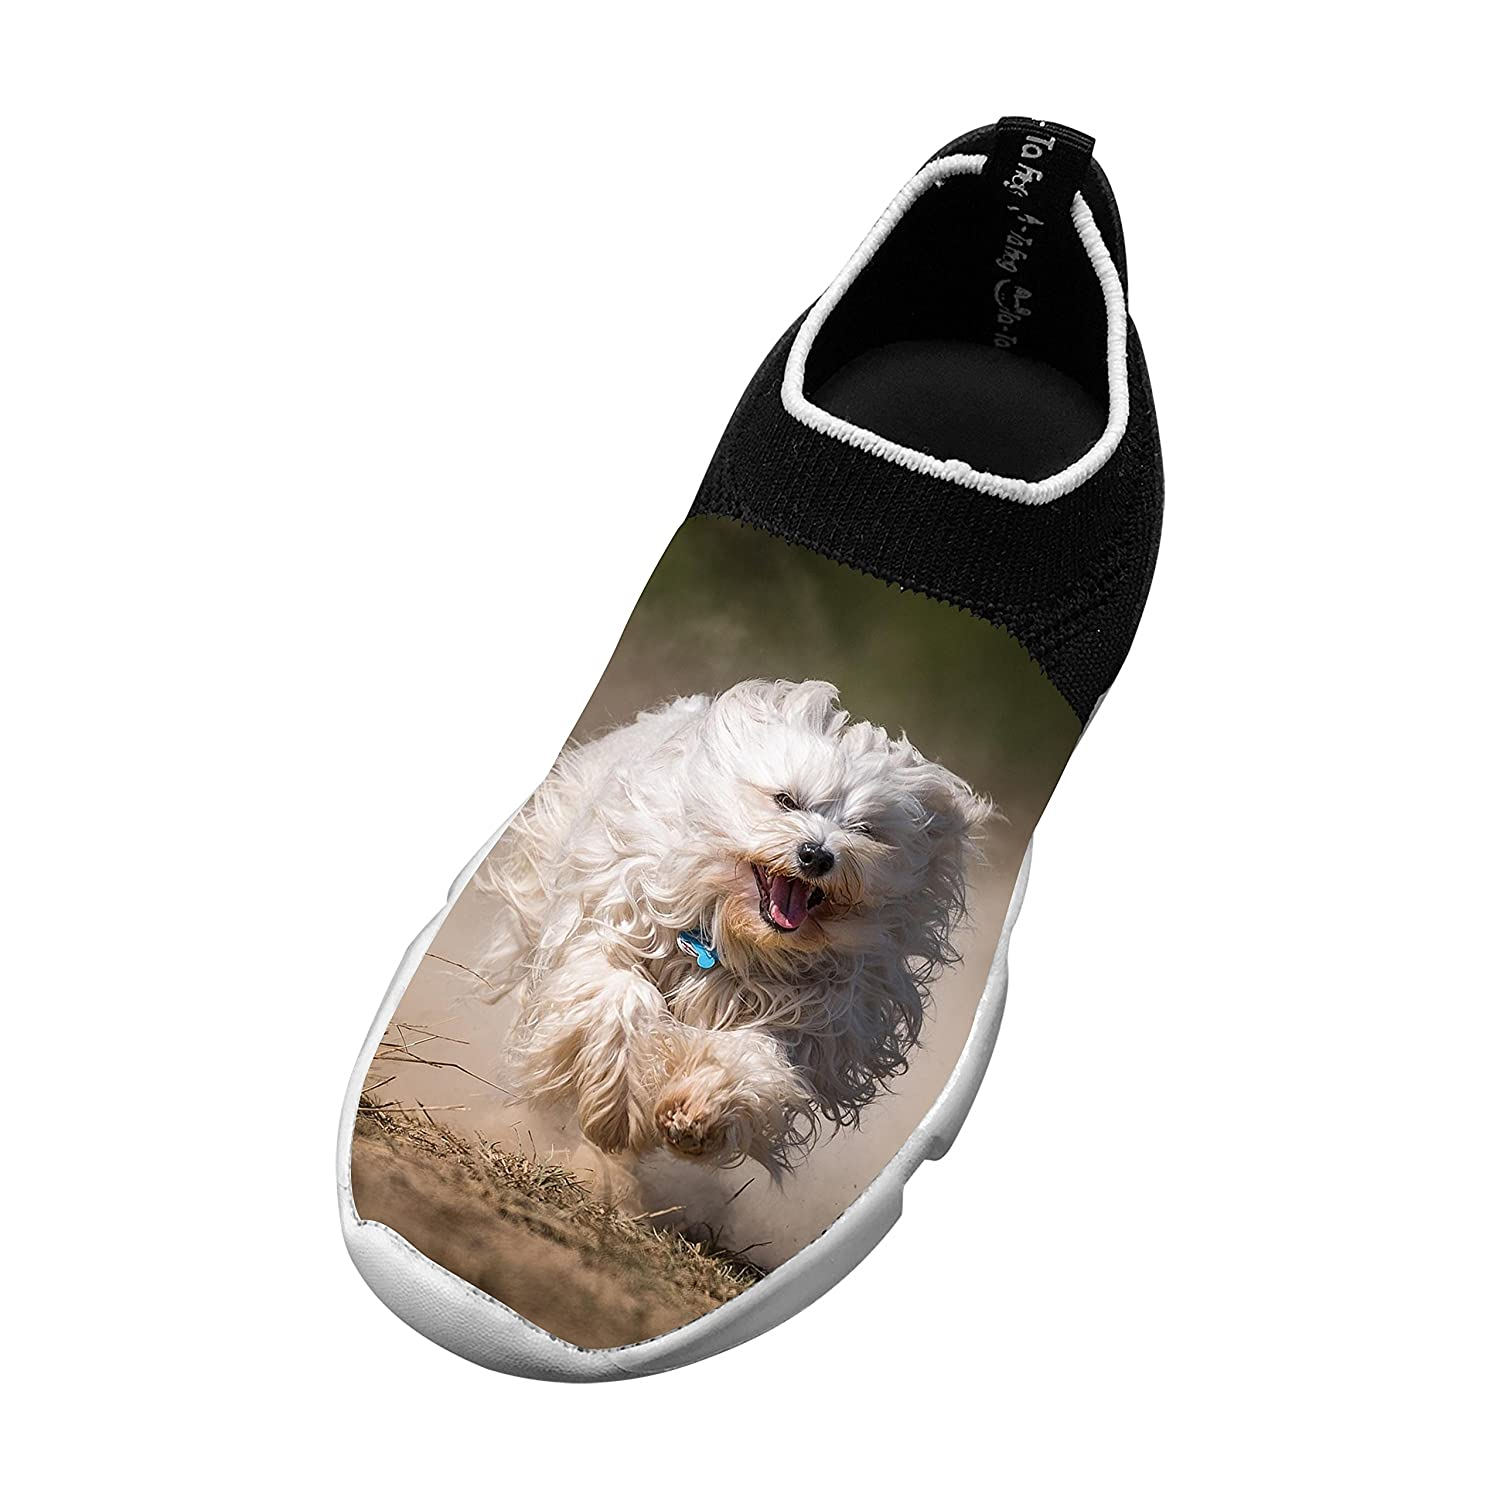 New Awesome Flywire Weaving Sports Shoes 3D Personalized With Nature Dog For Unisex Kids